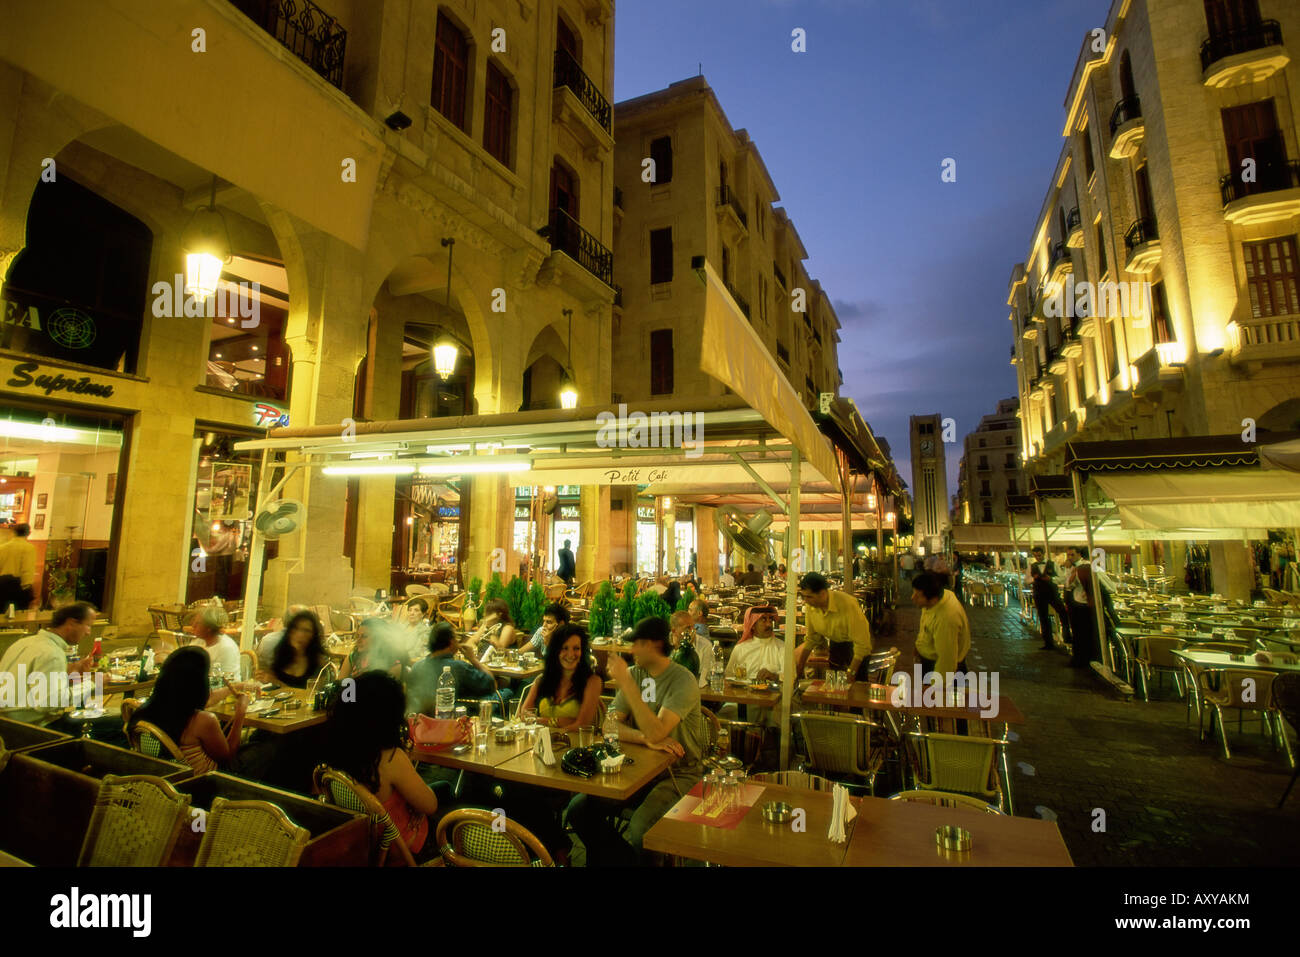 Restaurants en plein air dans le centre-ville de Central District (BCD) dans la ville reconstruite, Beyrouth, Liban, Photo Stock